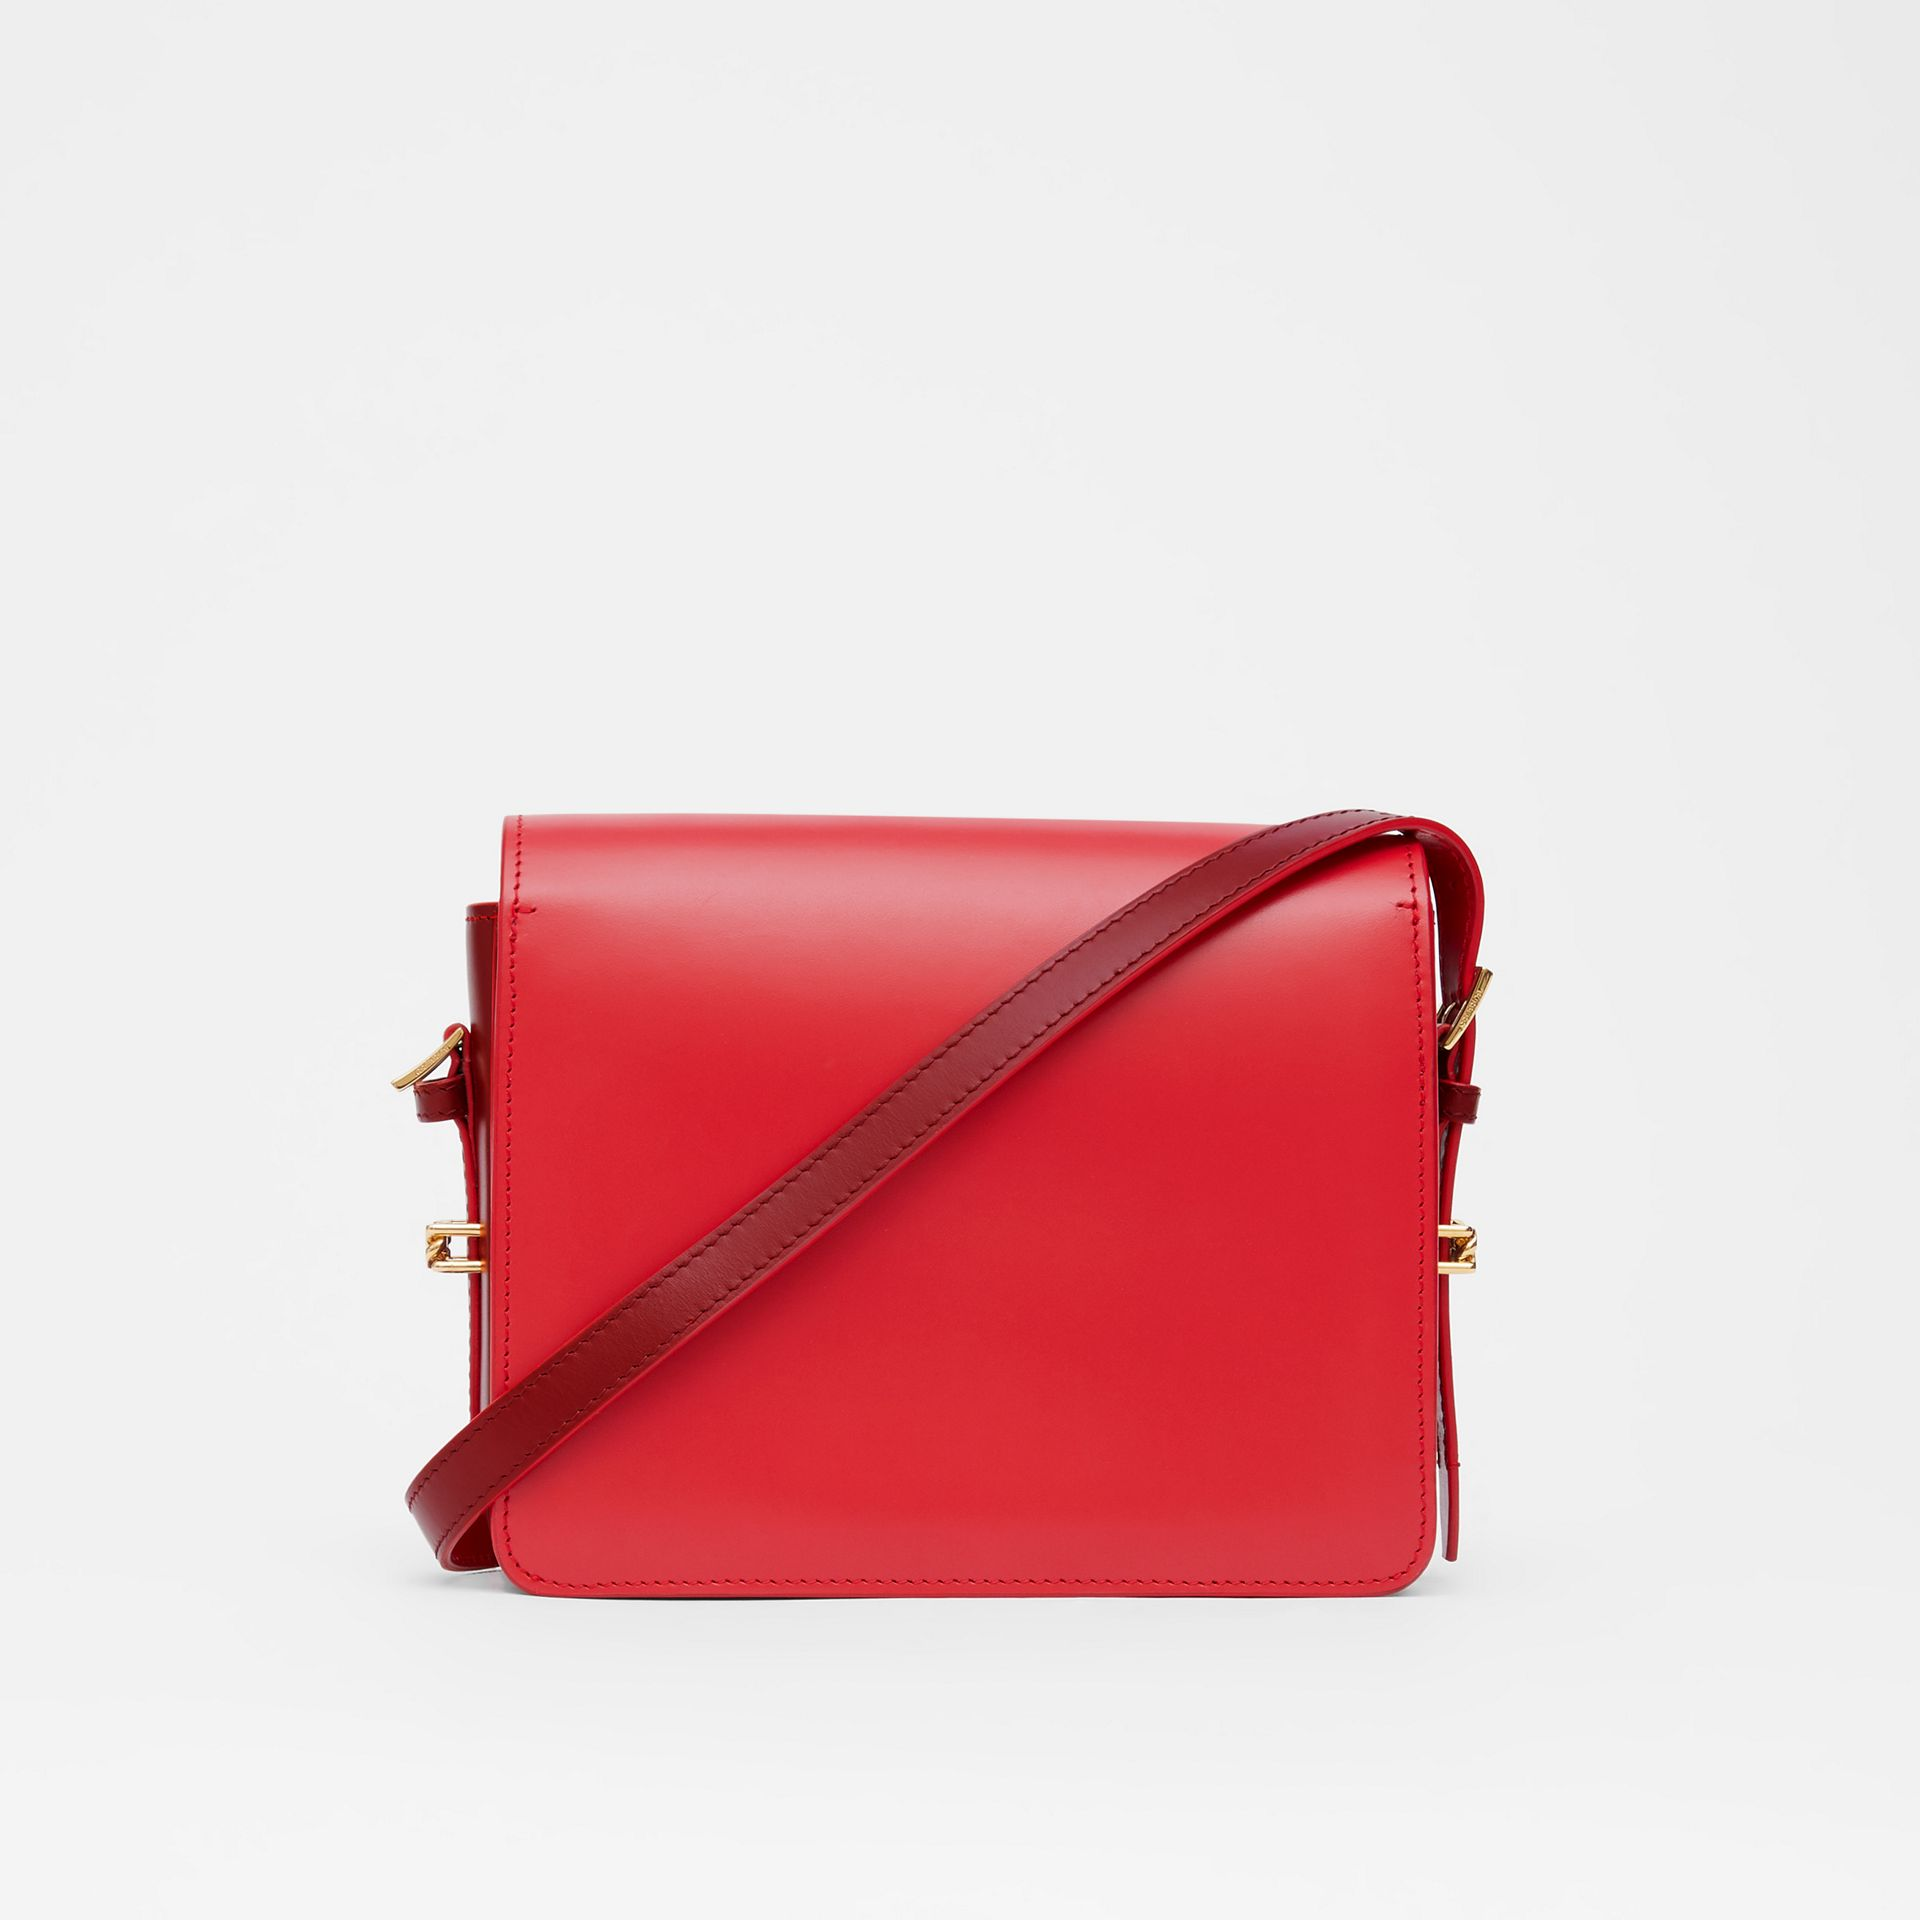 Small Two-tone Leather Grace Bag in Bright Red/burgundy - Women | Burberry - gallery image 7